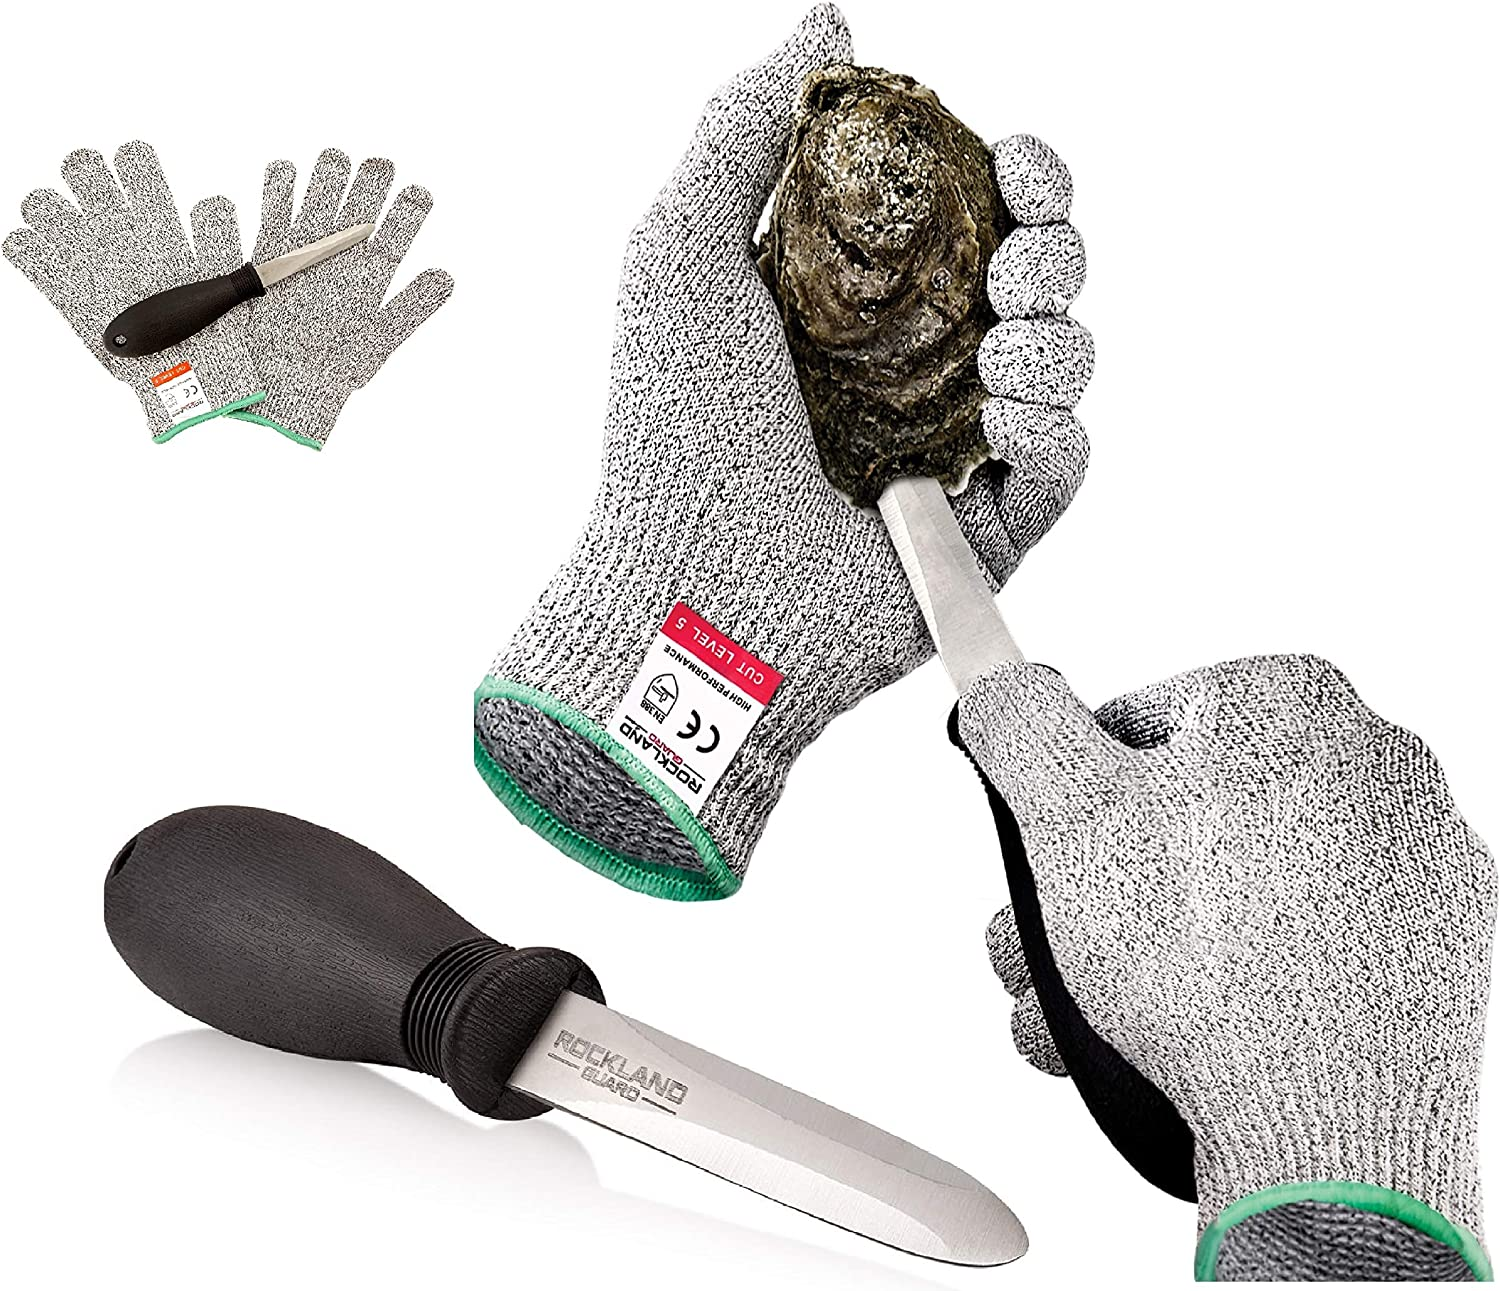 Rockland Guard Oyster Shucking Set- High Performance Level 5 Protection Food Grade Cut Resistant Gloves with 3.5'' Stainless steel Oyster Knife, perfect set for shucking oysters